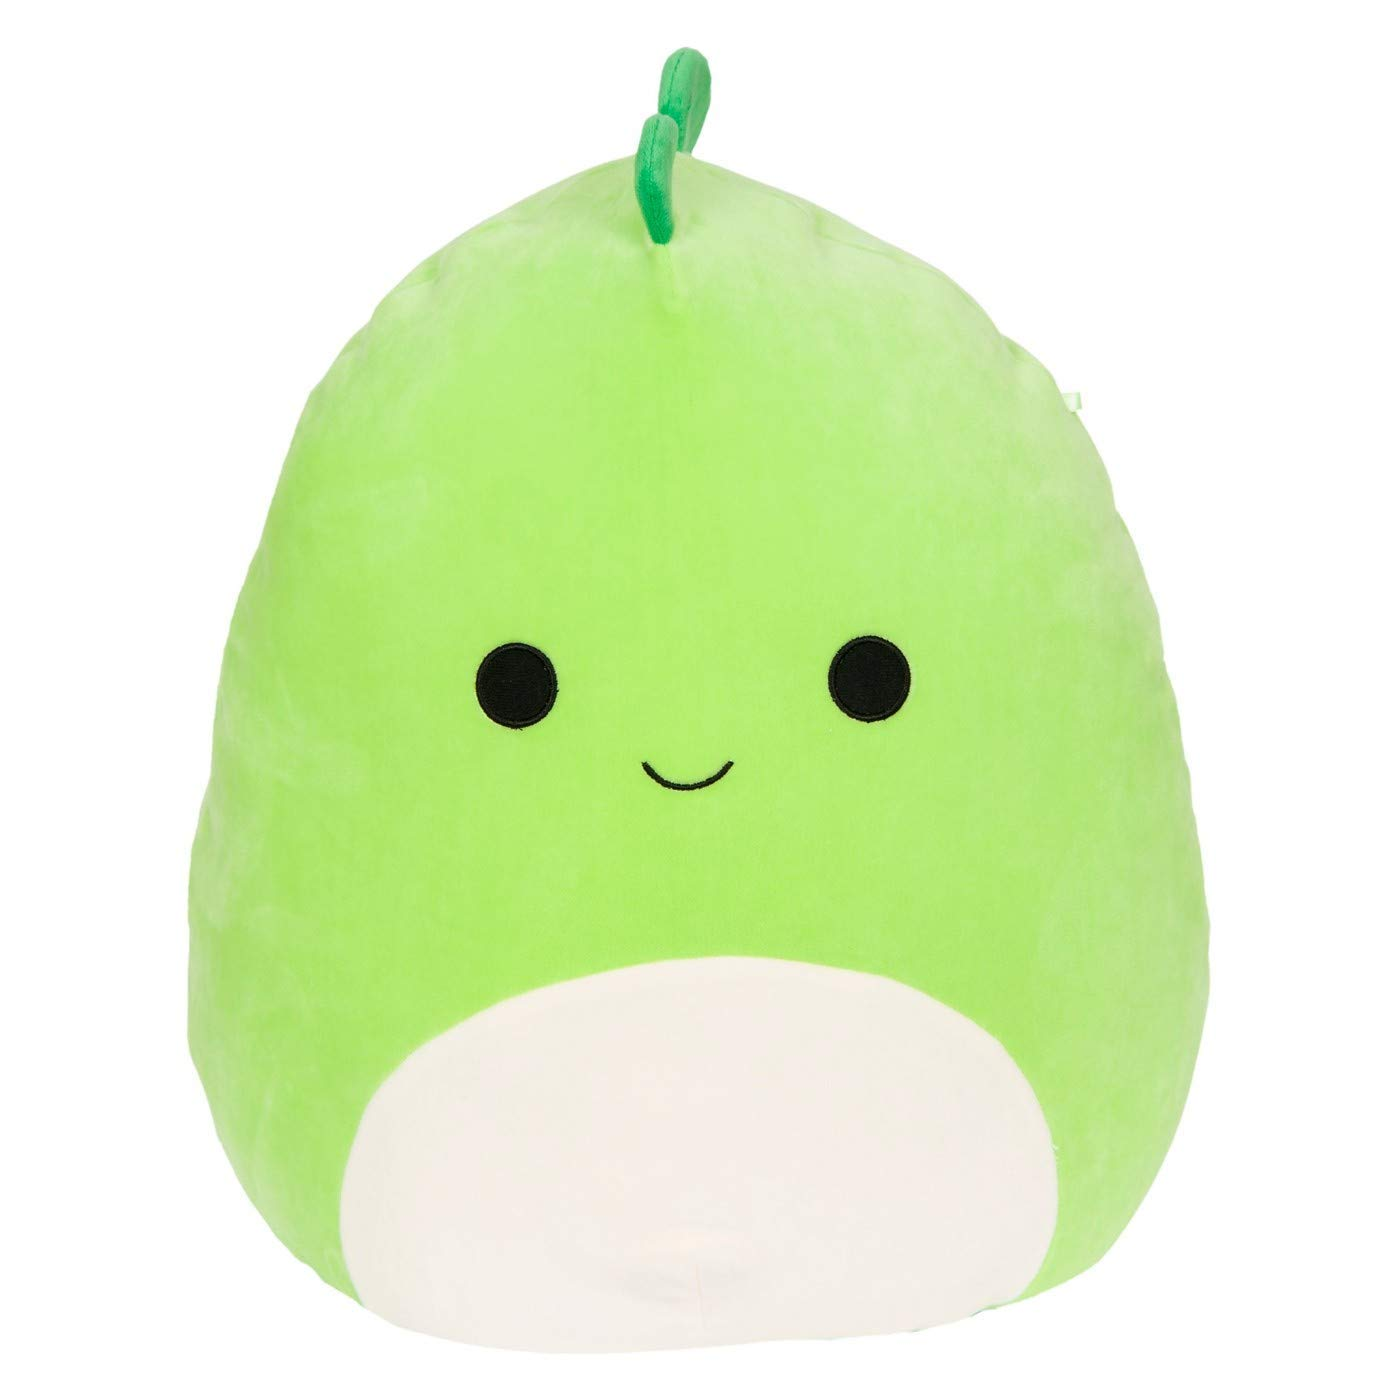 Squishmallow Original Kellytoy 16'' Dino The Green Dinosaur Stuffed Animal Pillow Pet Gift Christmas Holiday by Kelly Toy (Image #1)